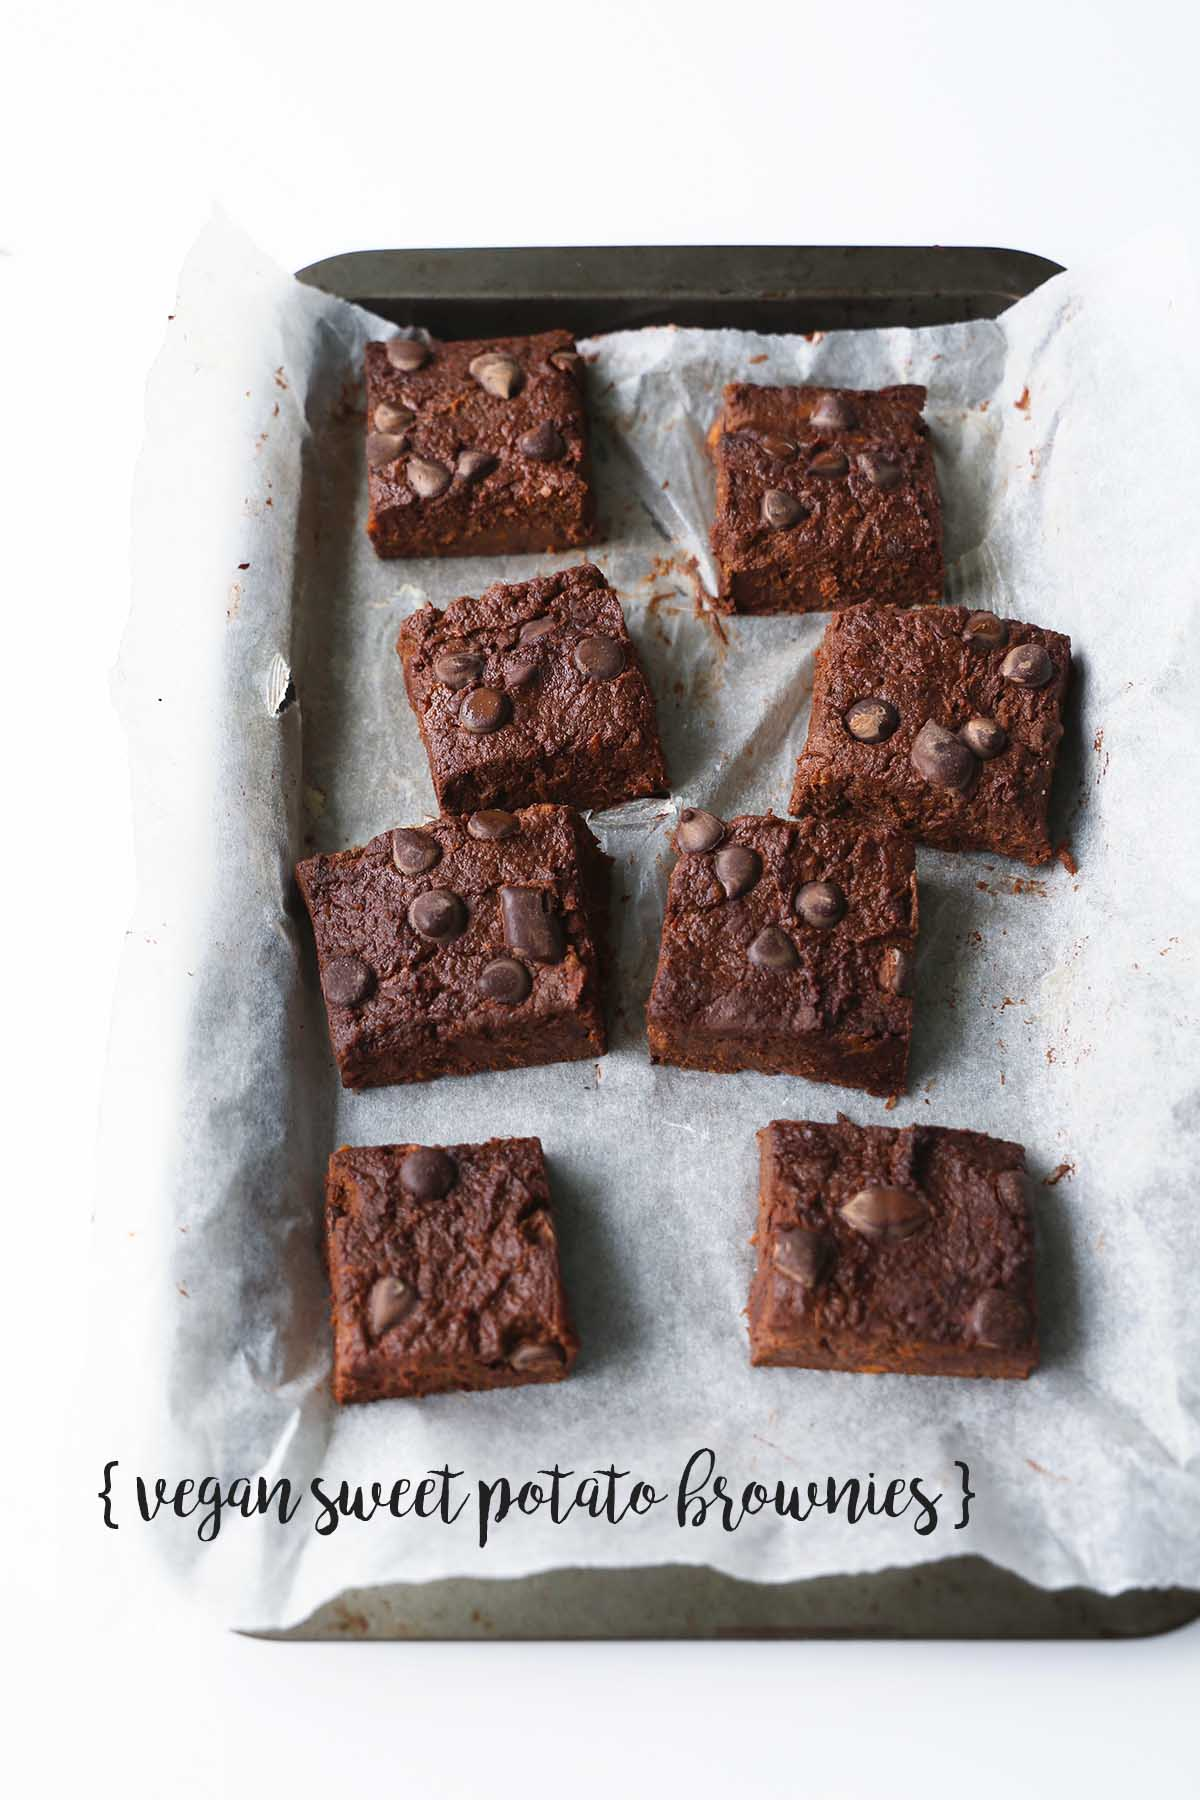 10 minutes low-fat vegan sweet potato brownies